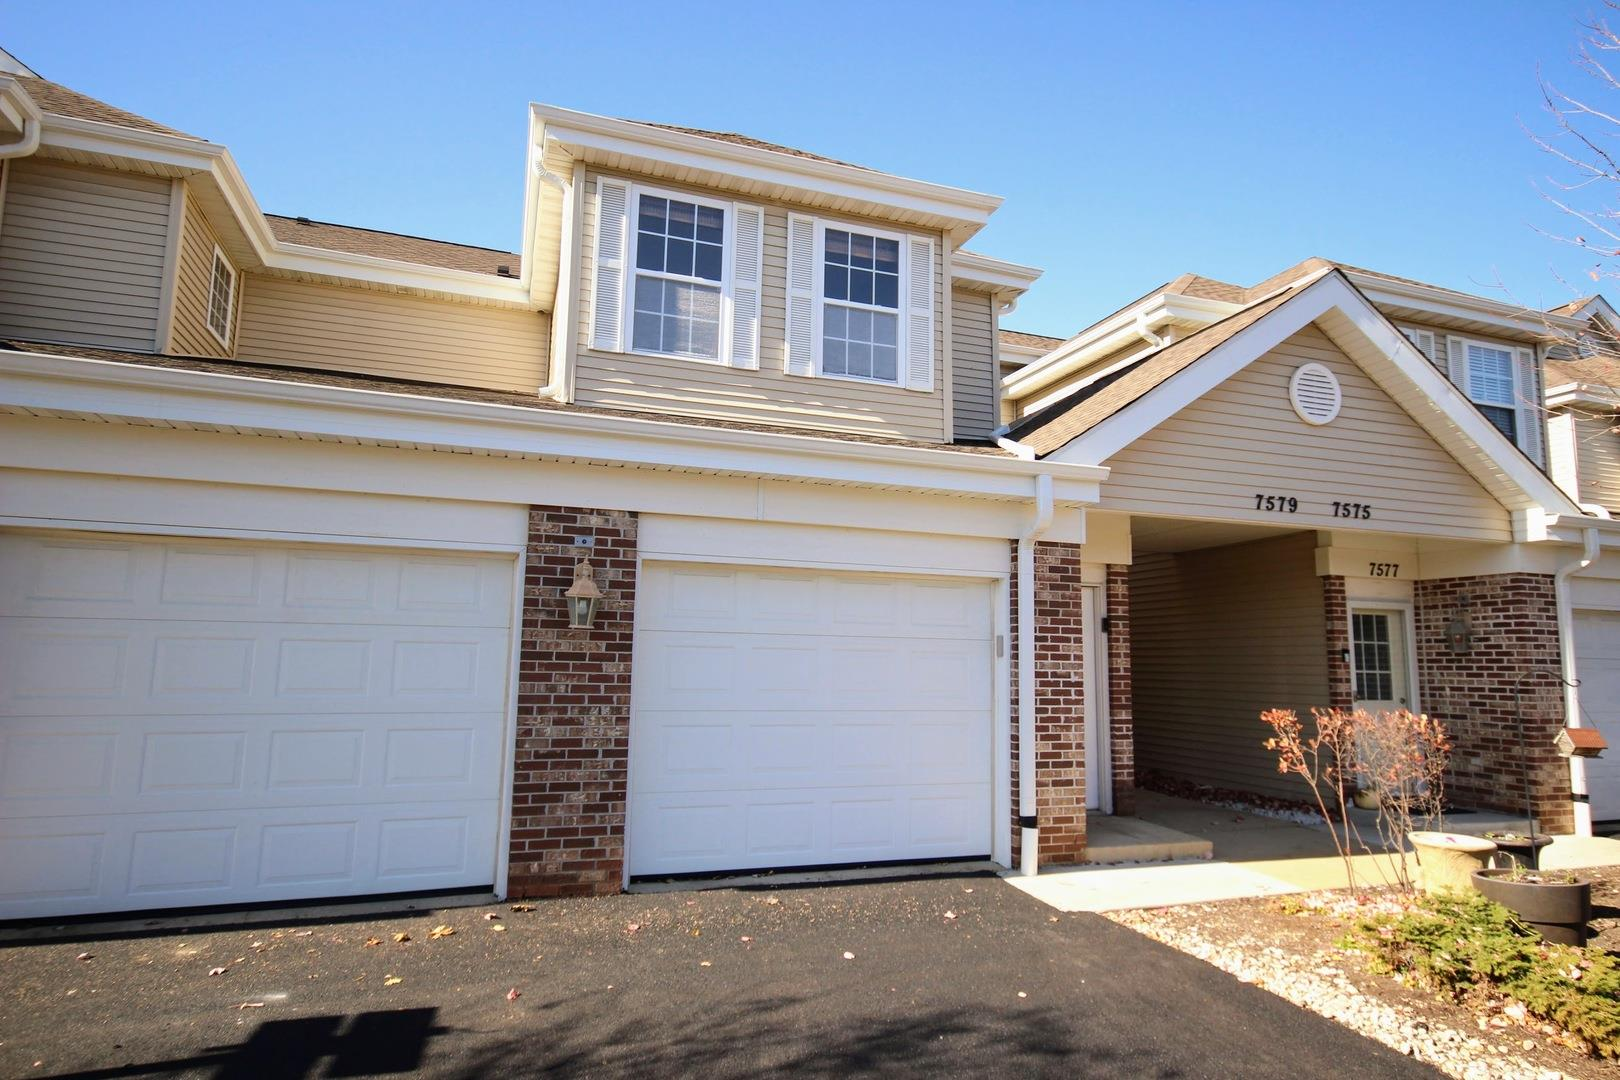 7579 Magnolia Trail #3A, Cherry Valley, IL 61016 - #: 10935247